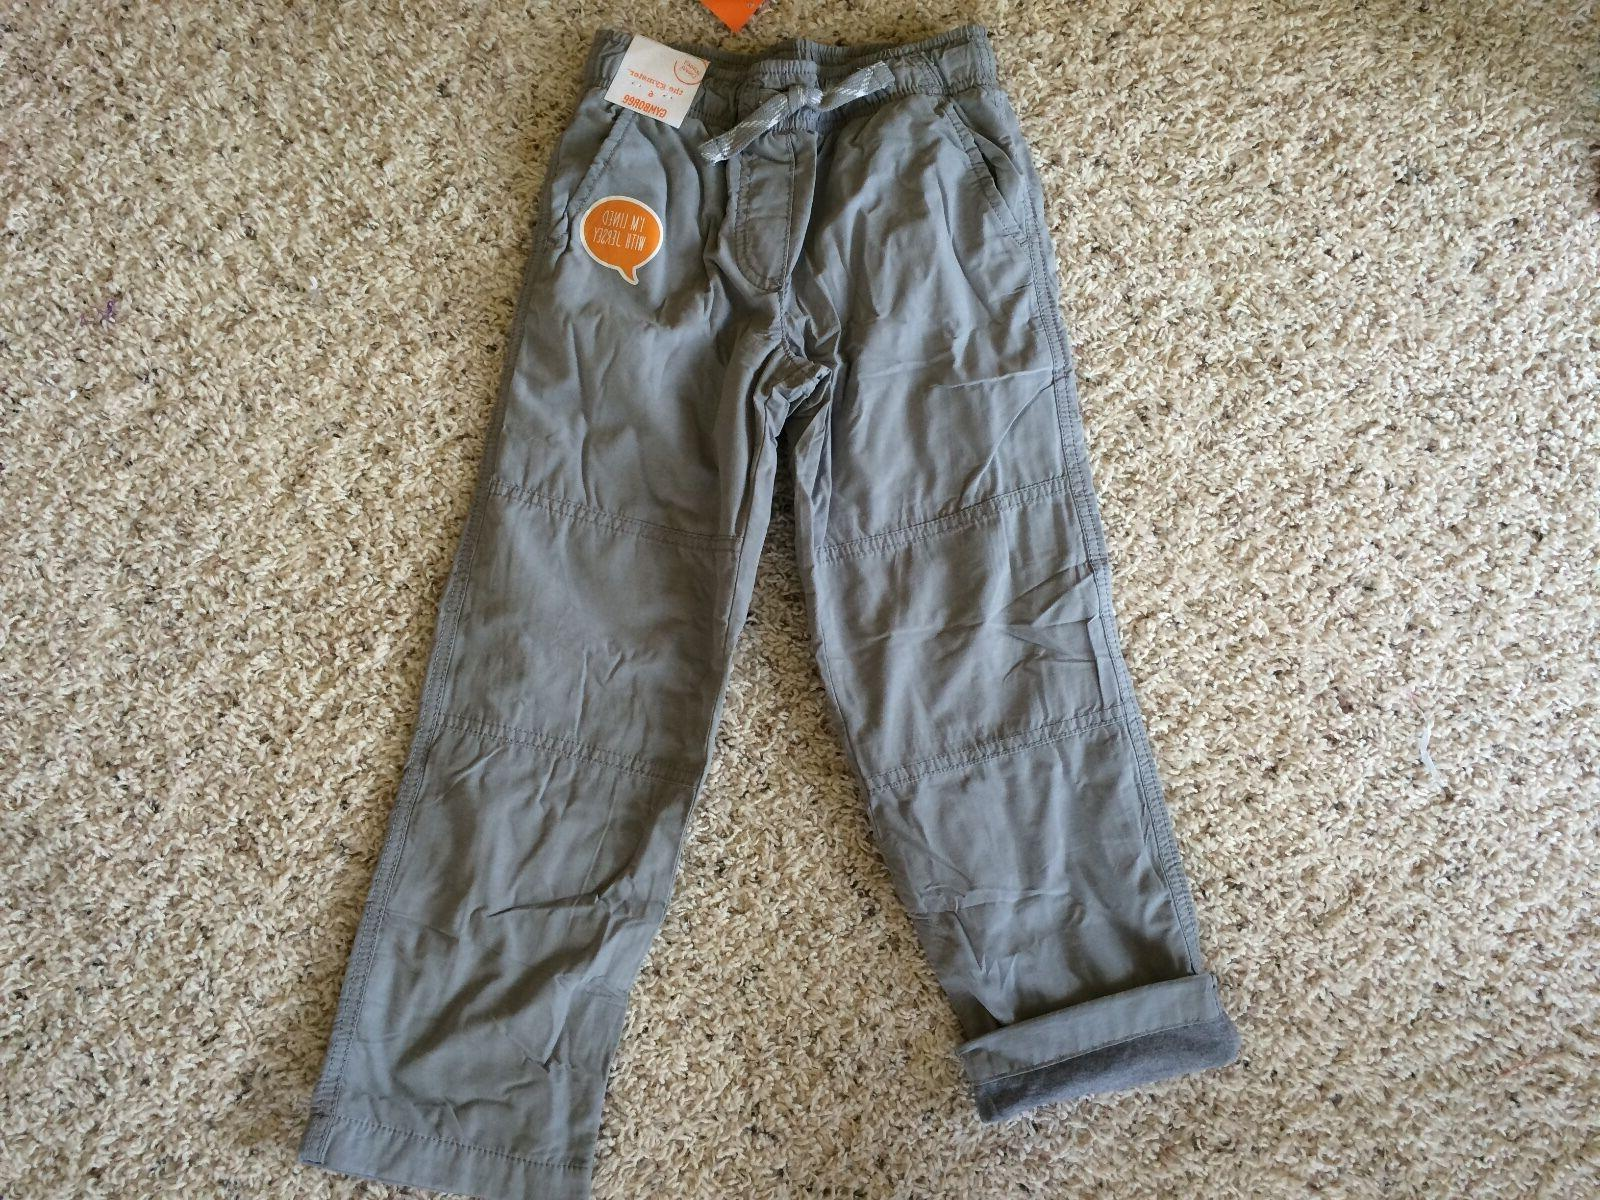 nwt boys pull on pants gray jersey